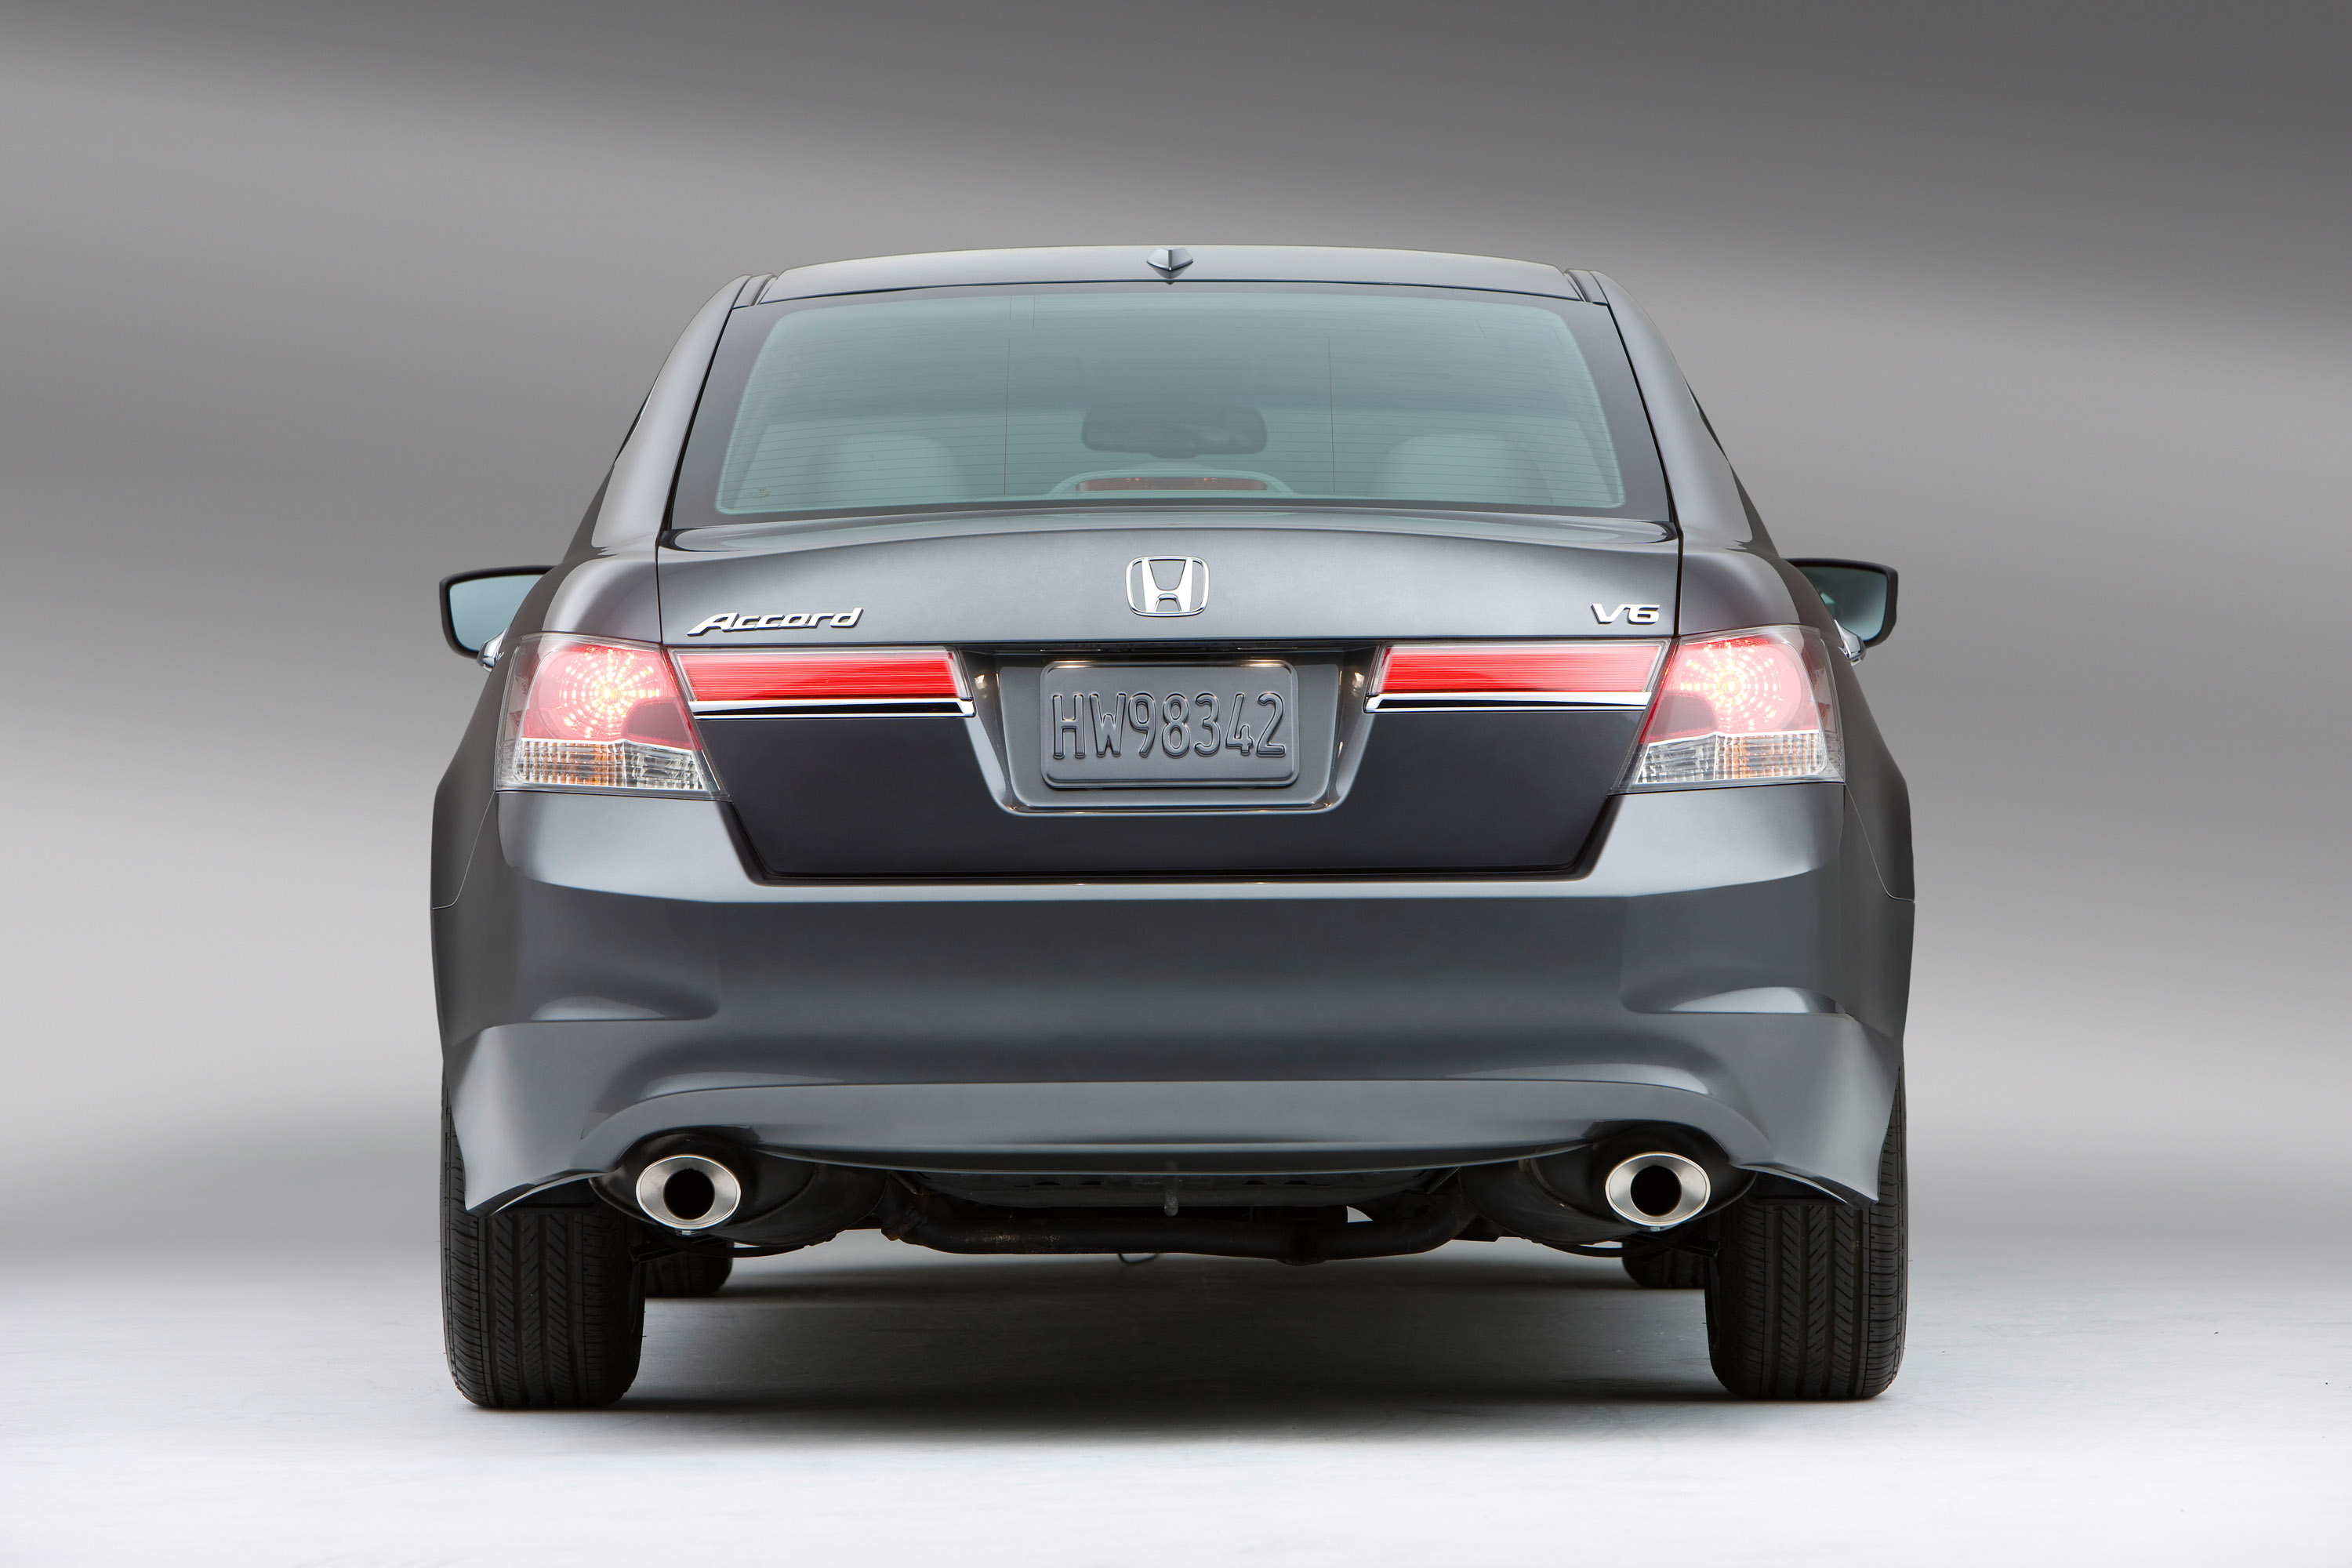 Honda Accord EX-L V6 Sedan